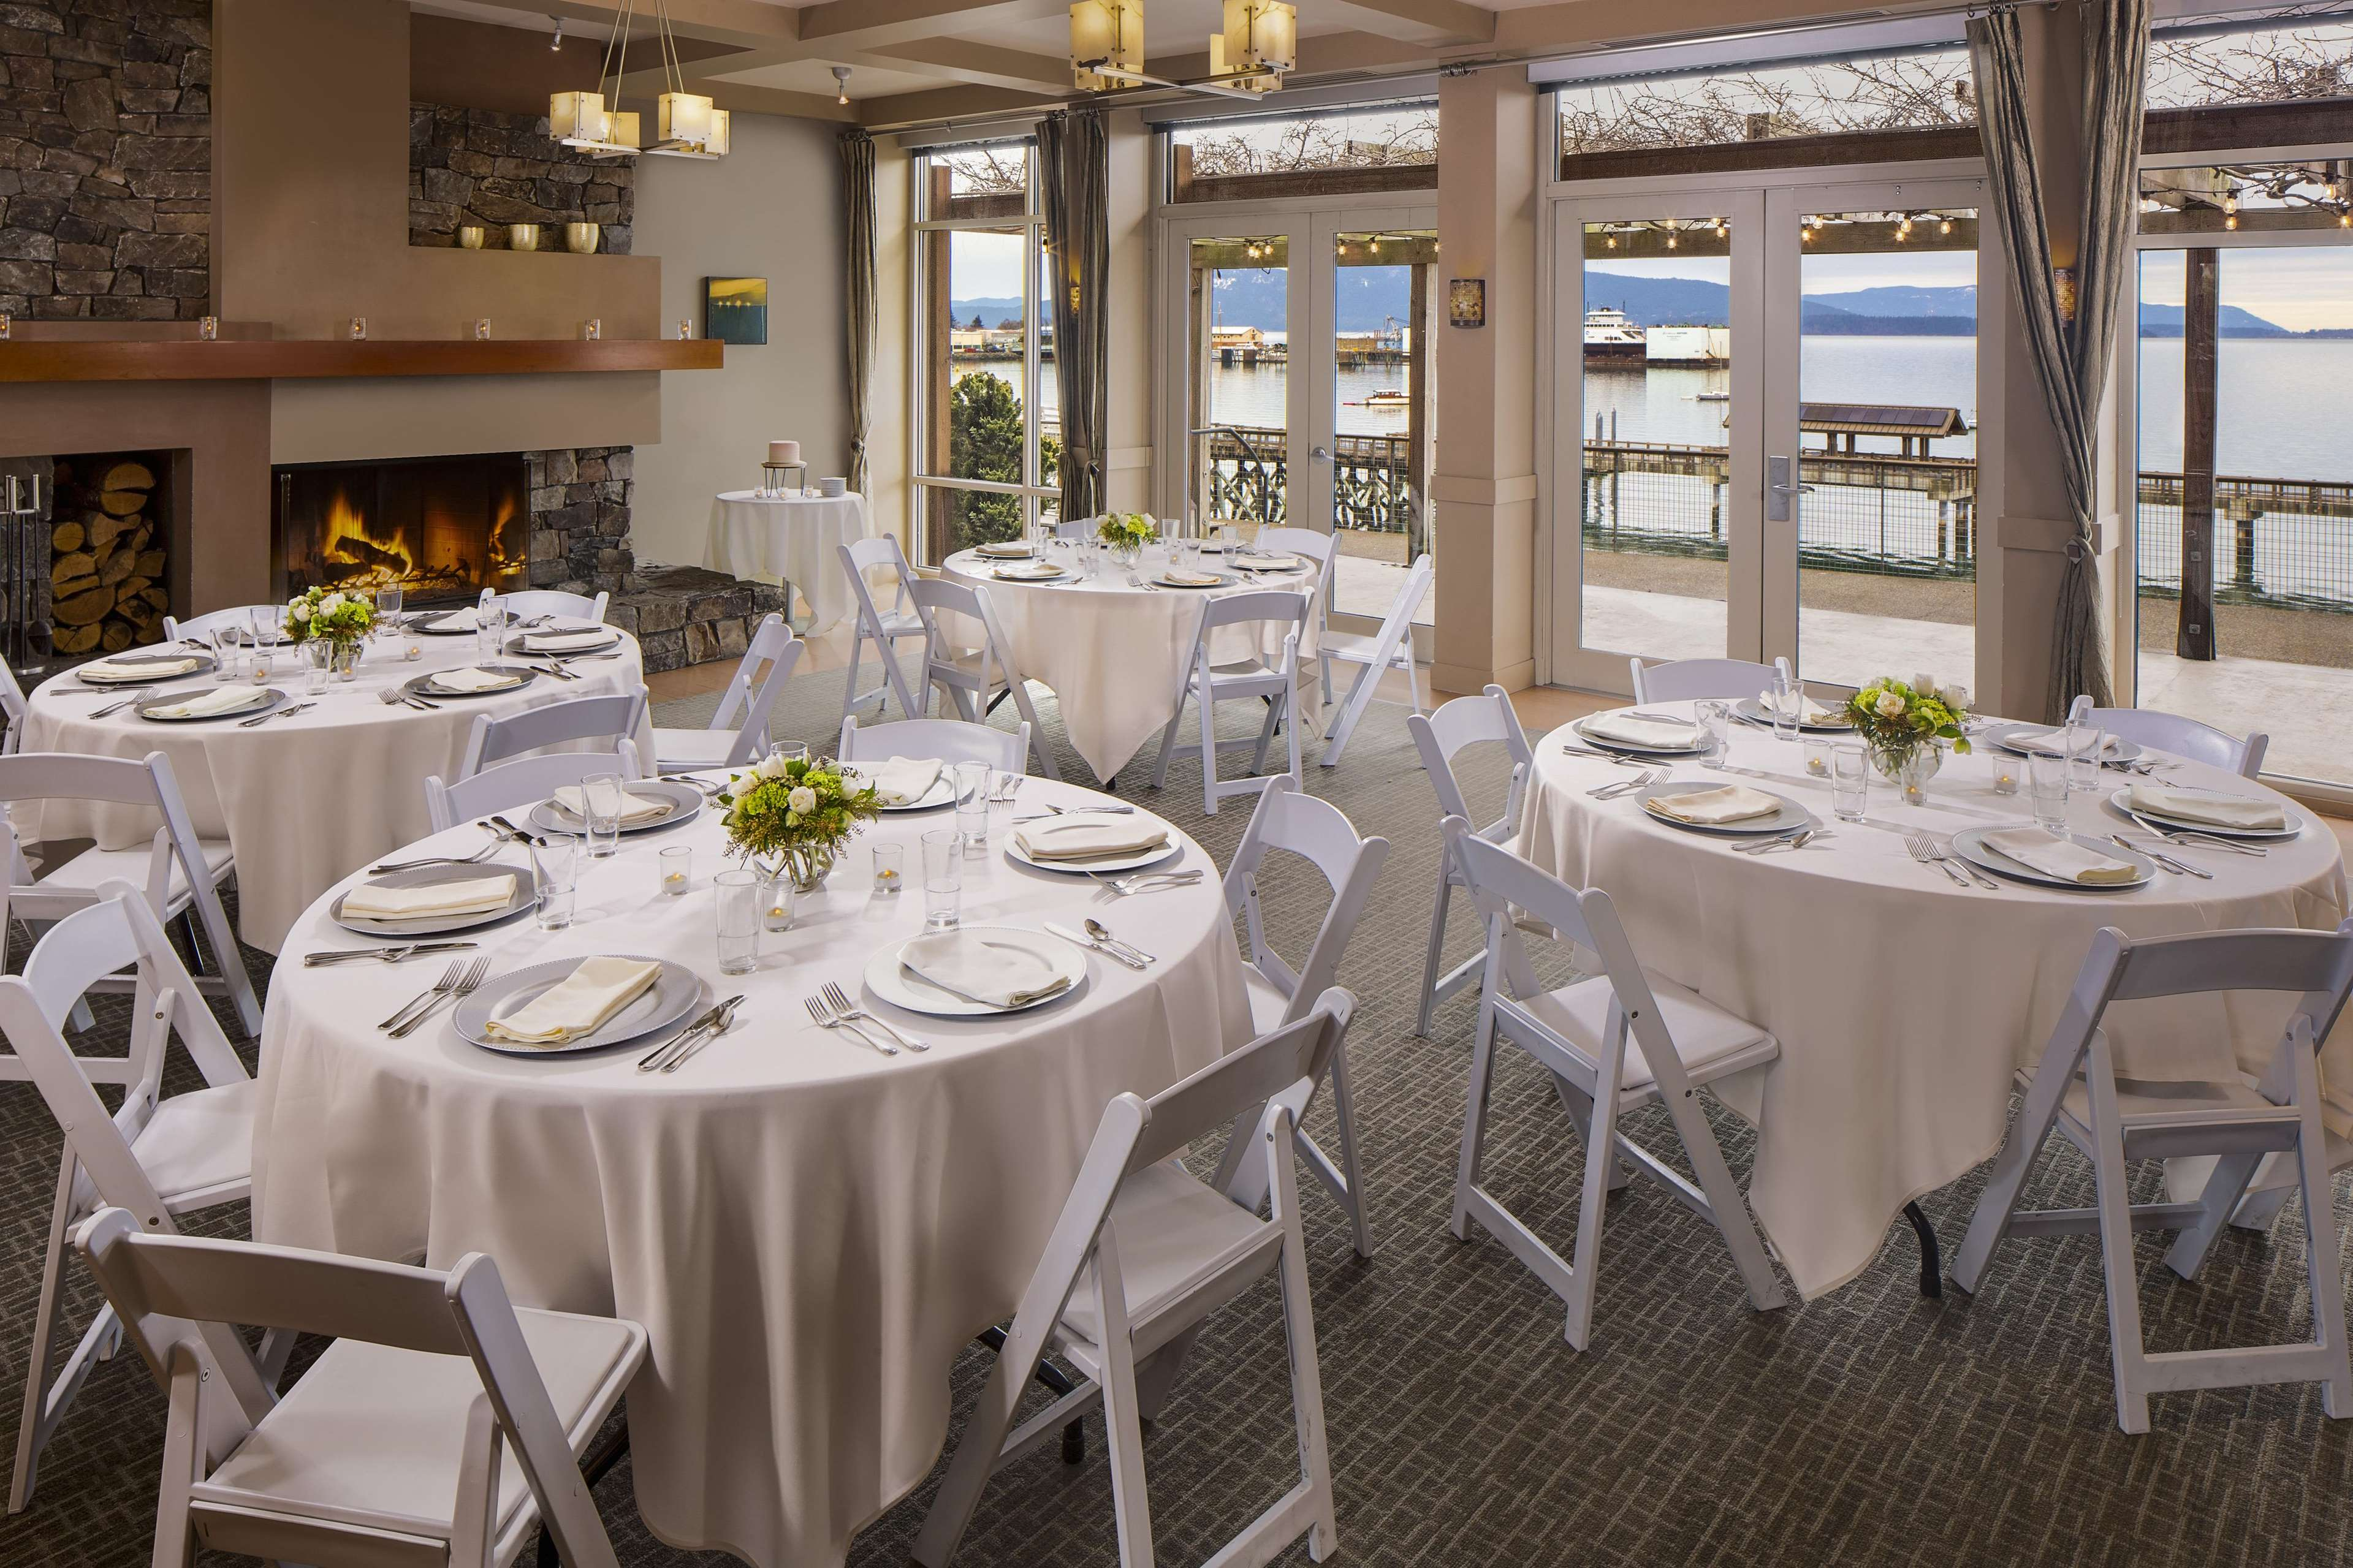 The Chrysalis Inn & Spa Bellingham, Curio Collection by Hilton image 5